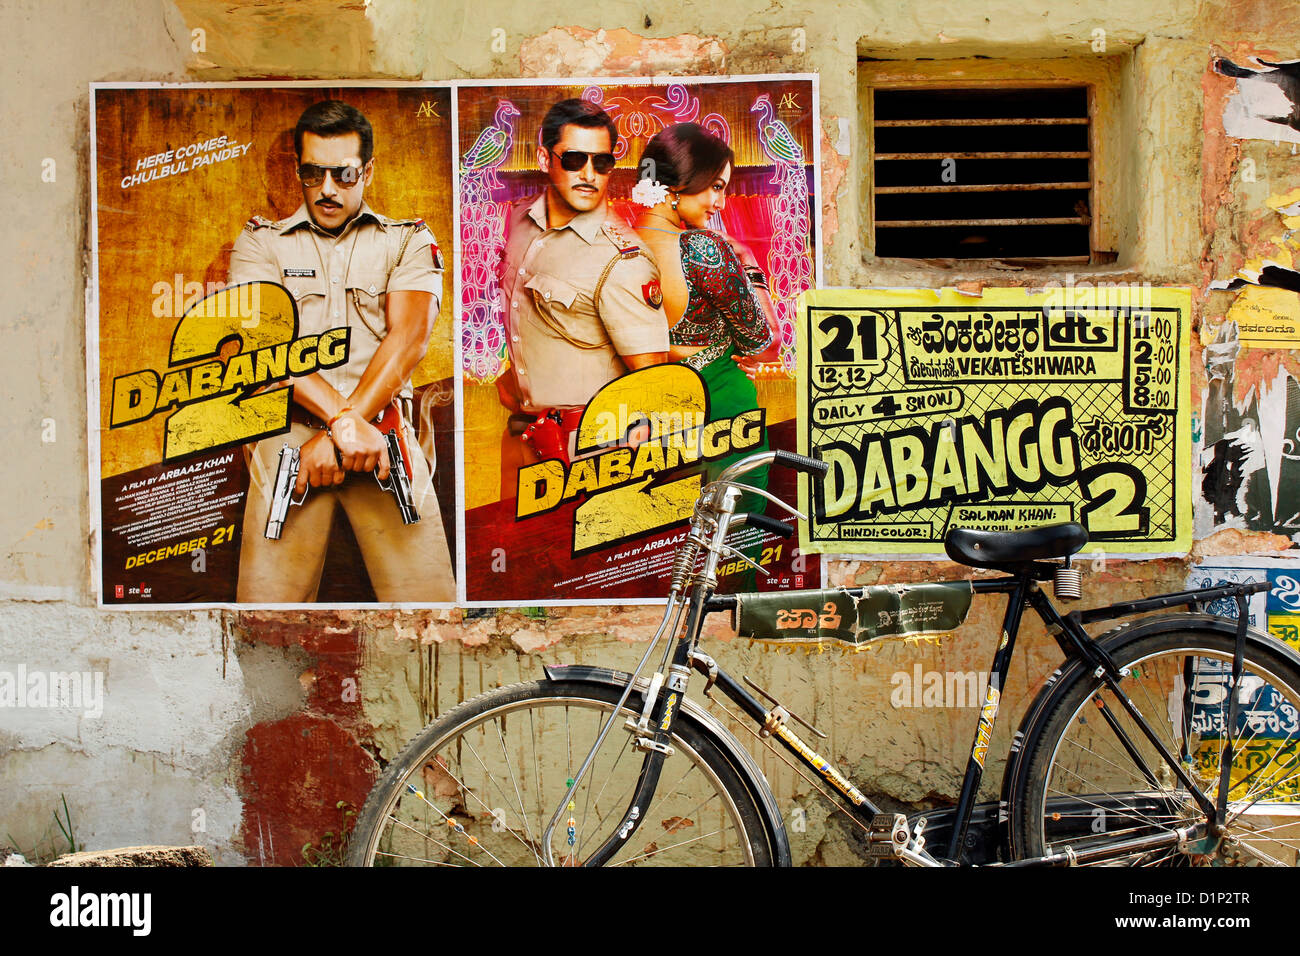 Affiche de film de Bollywood Photo Stock